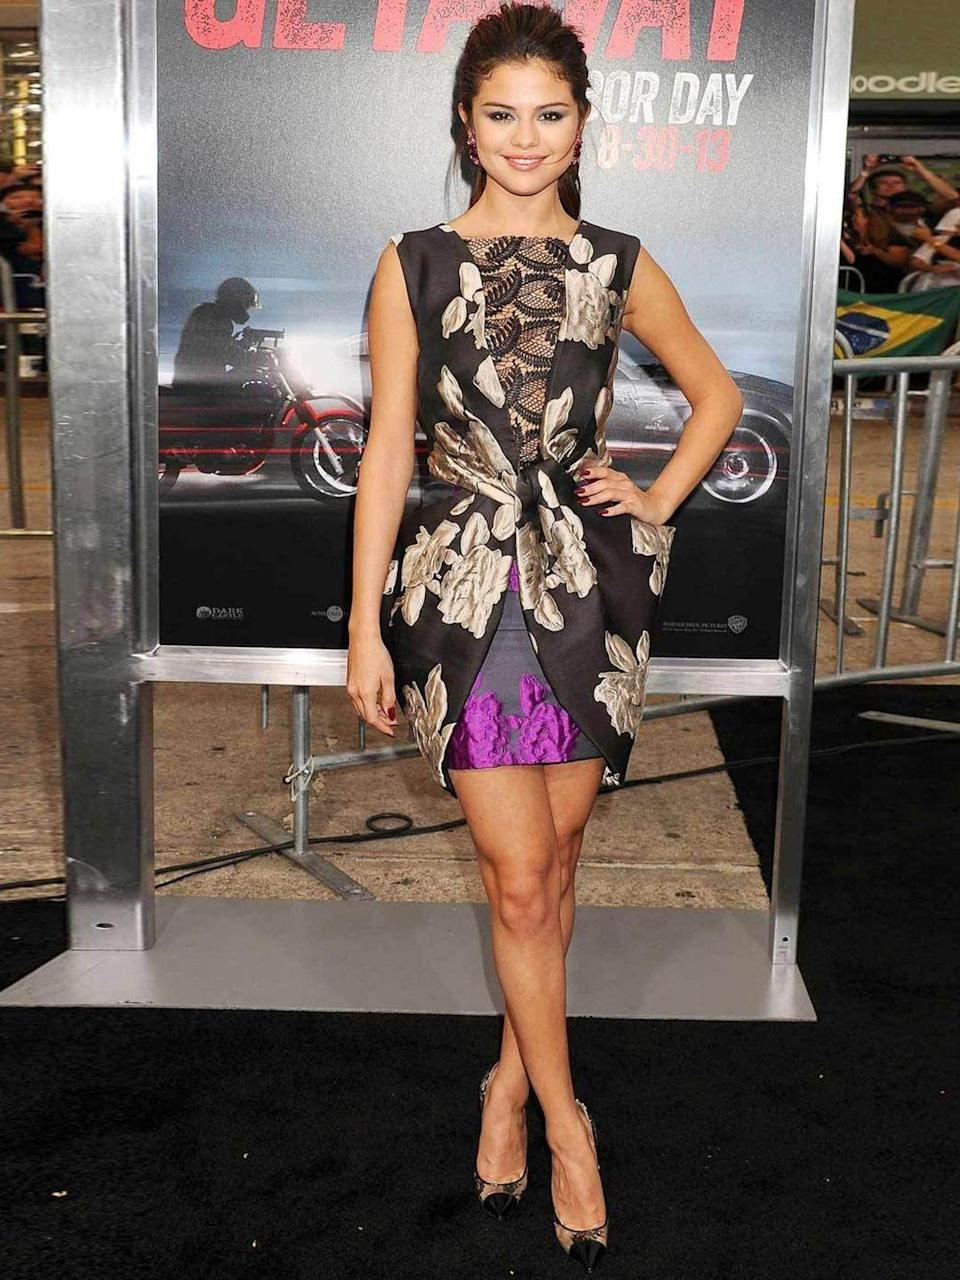 <p>Selena Gomez in a Vera Wang dresses attends the Getaway premiere, August 2013.</p>